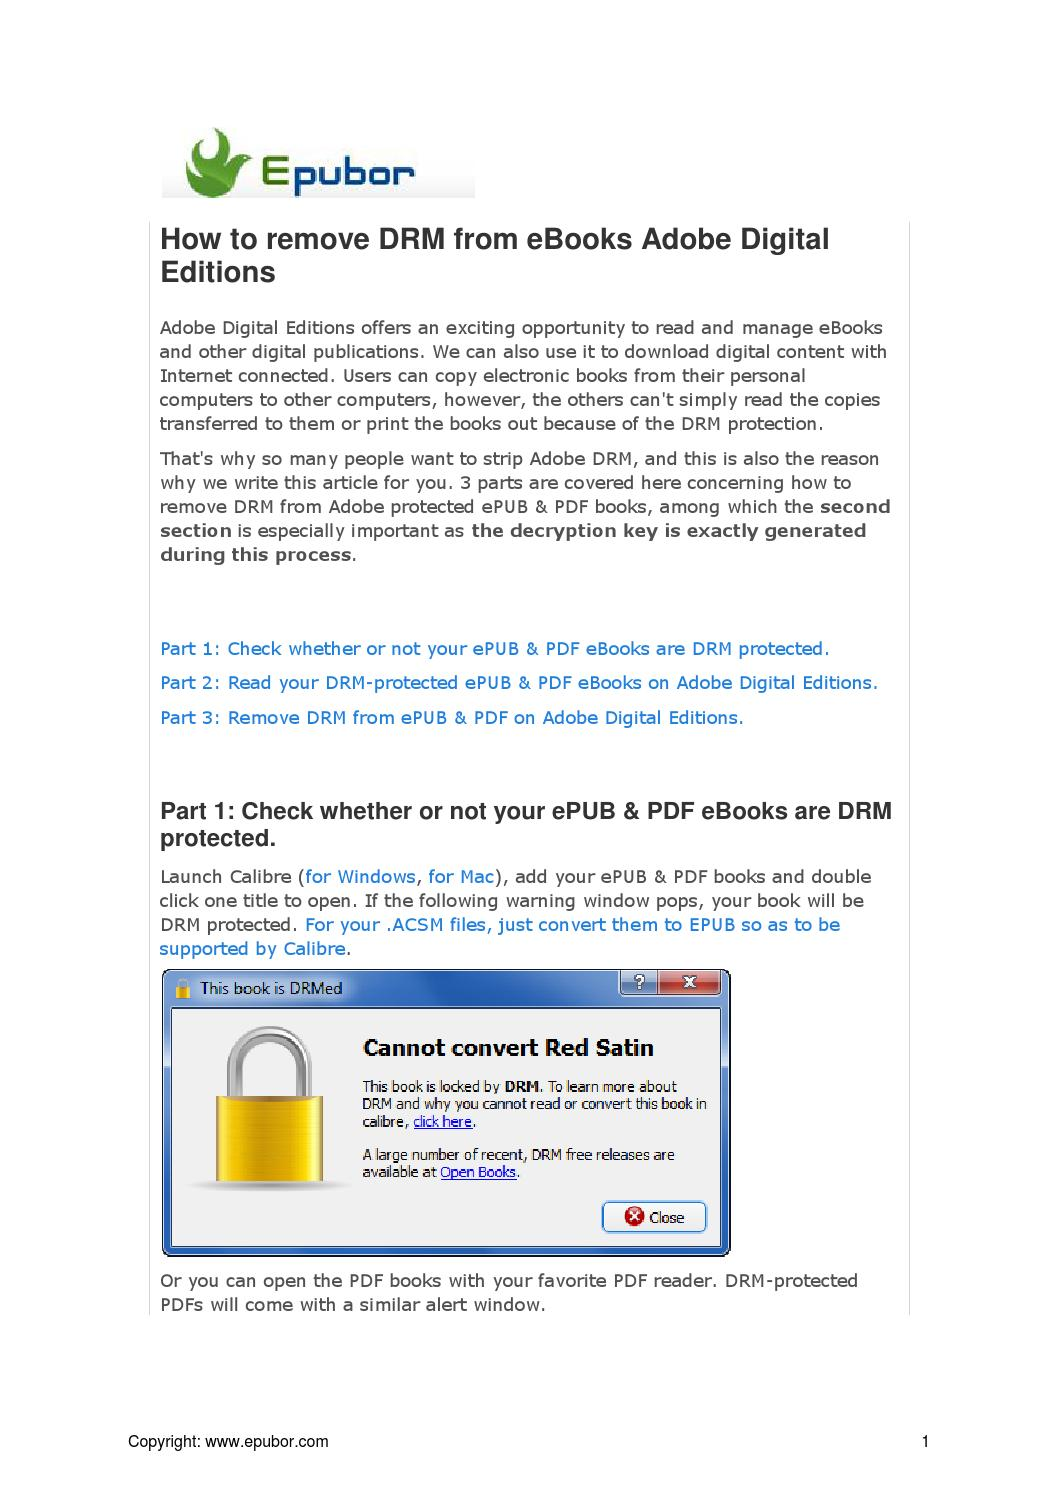 How to remove DRM from eBooks Adobe Digital Editions by